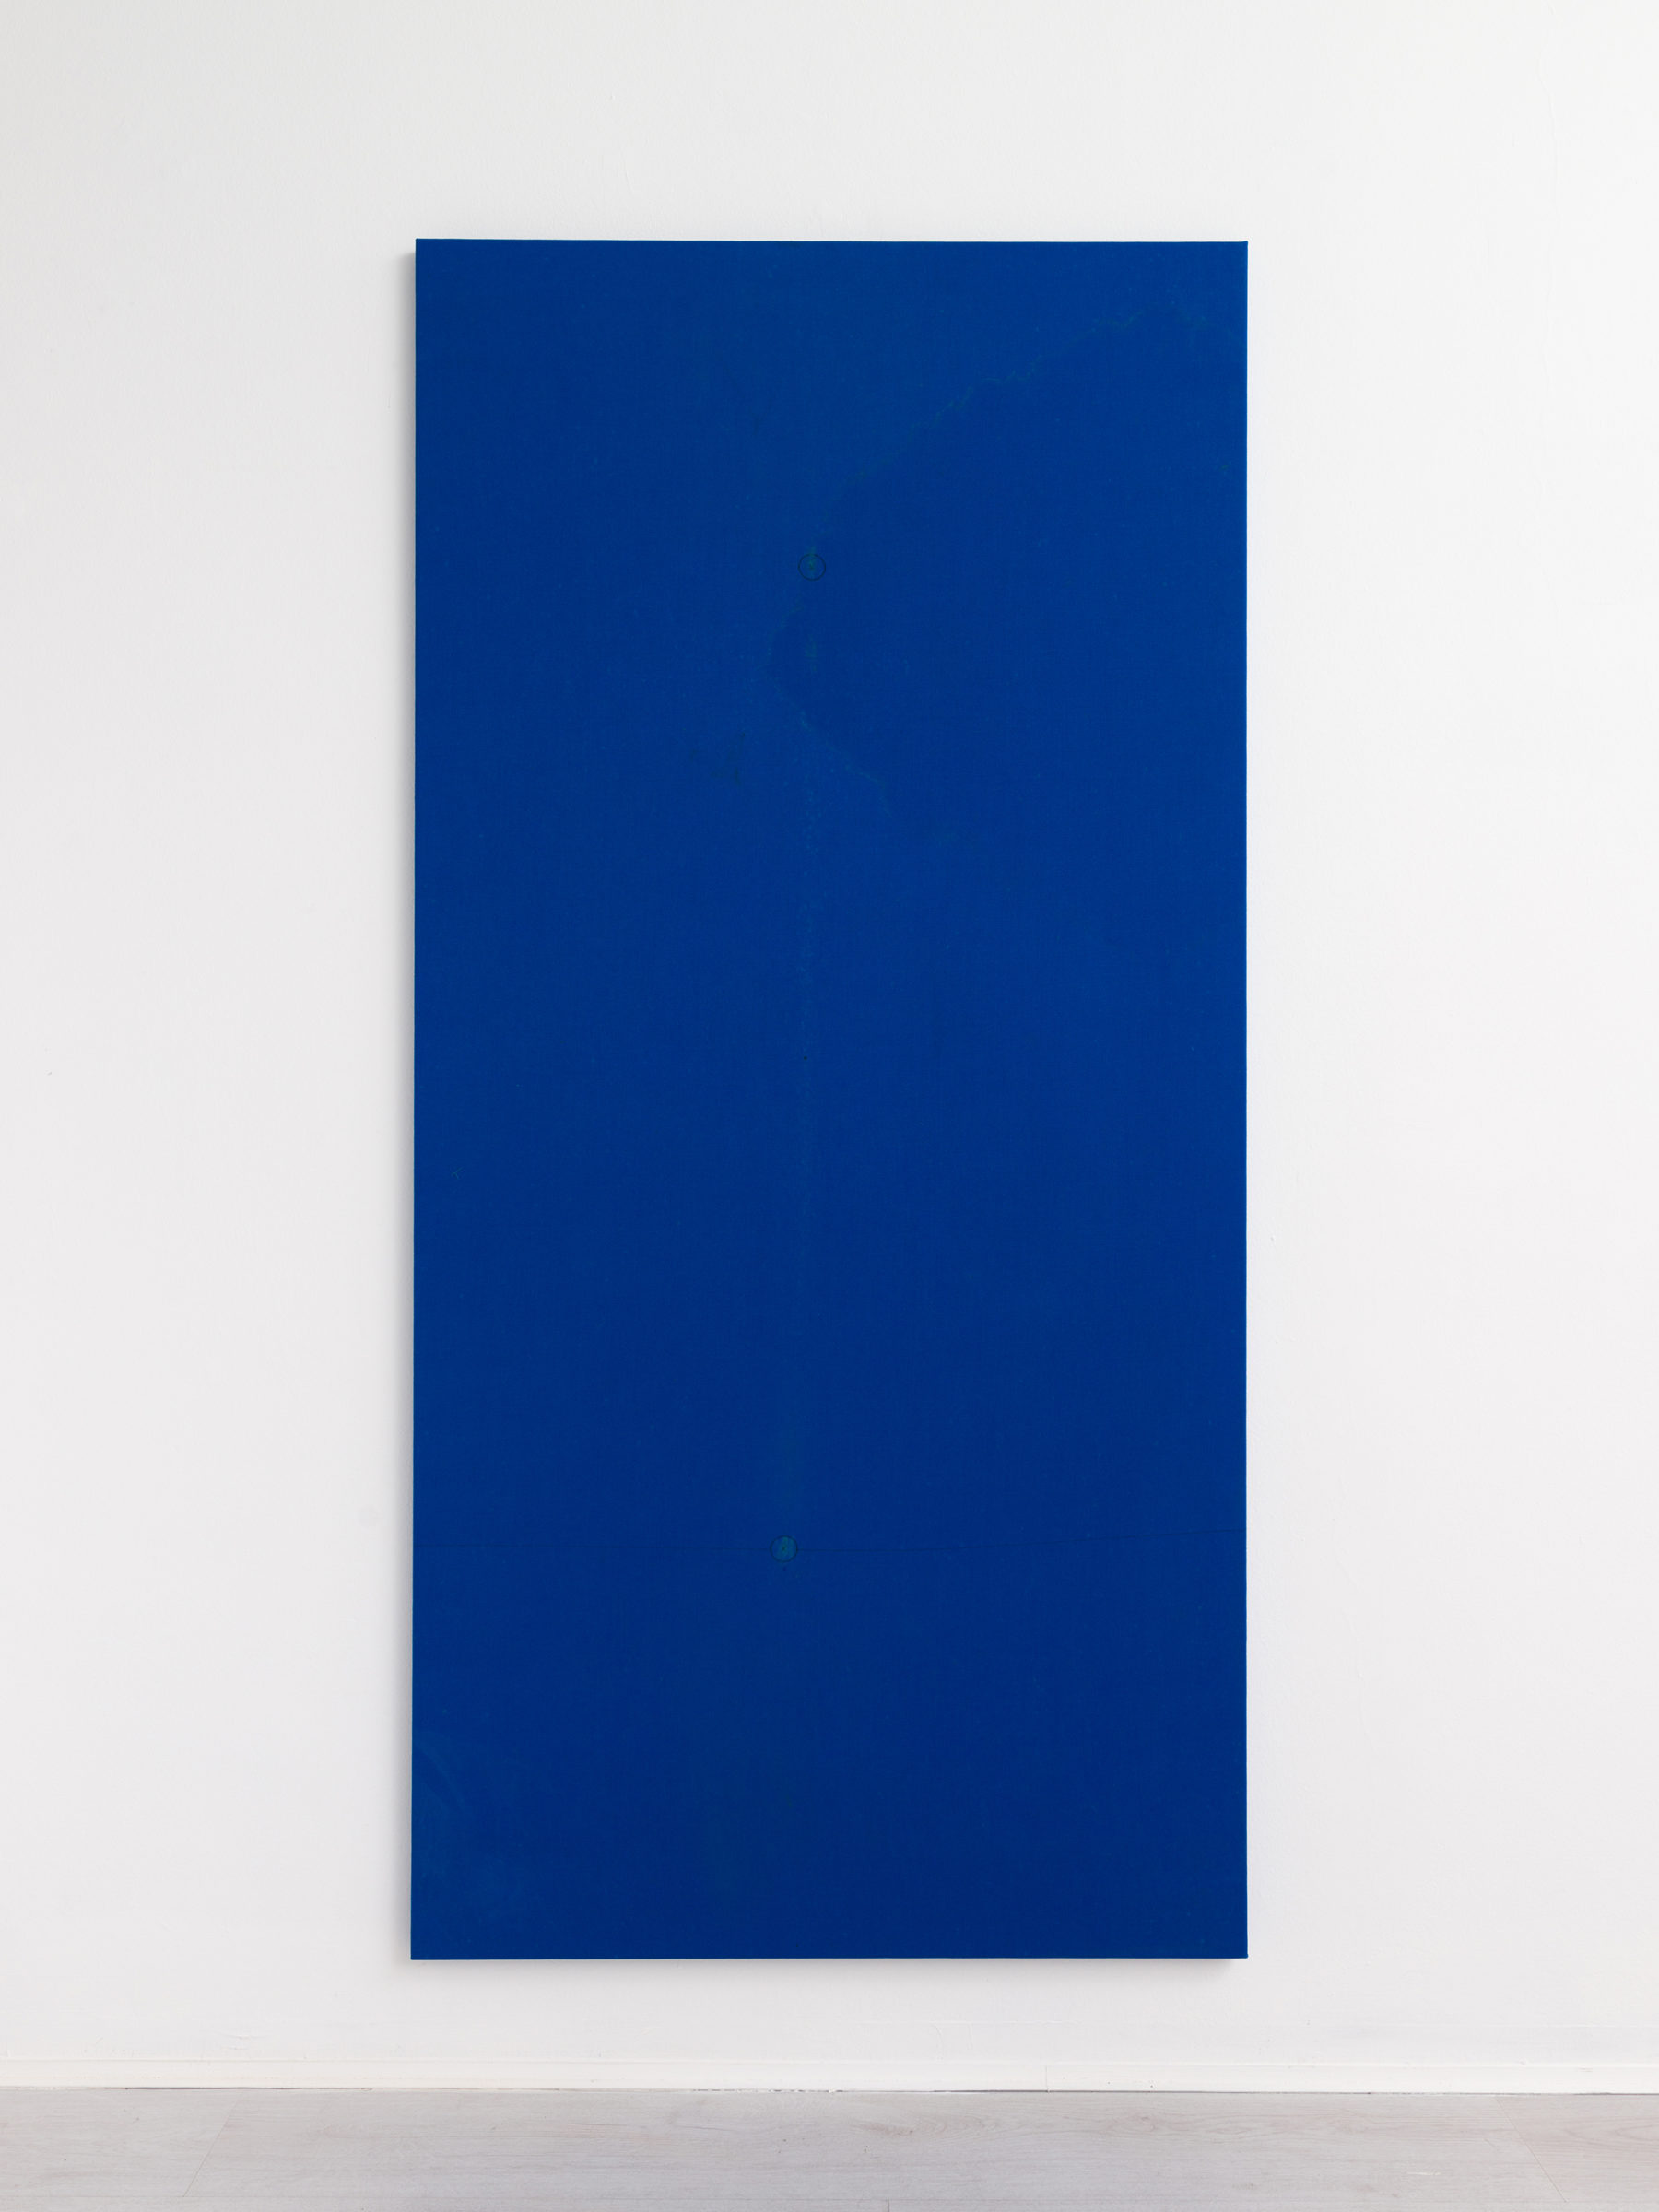 2.Simon Laureyns, used pooltable felt, 190x90cm - 2016